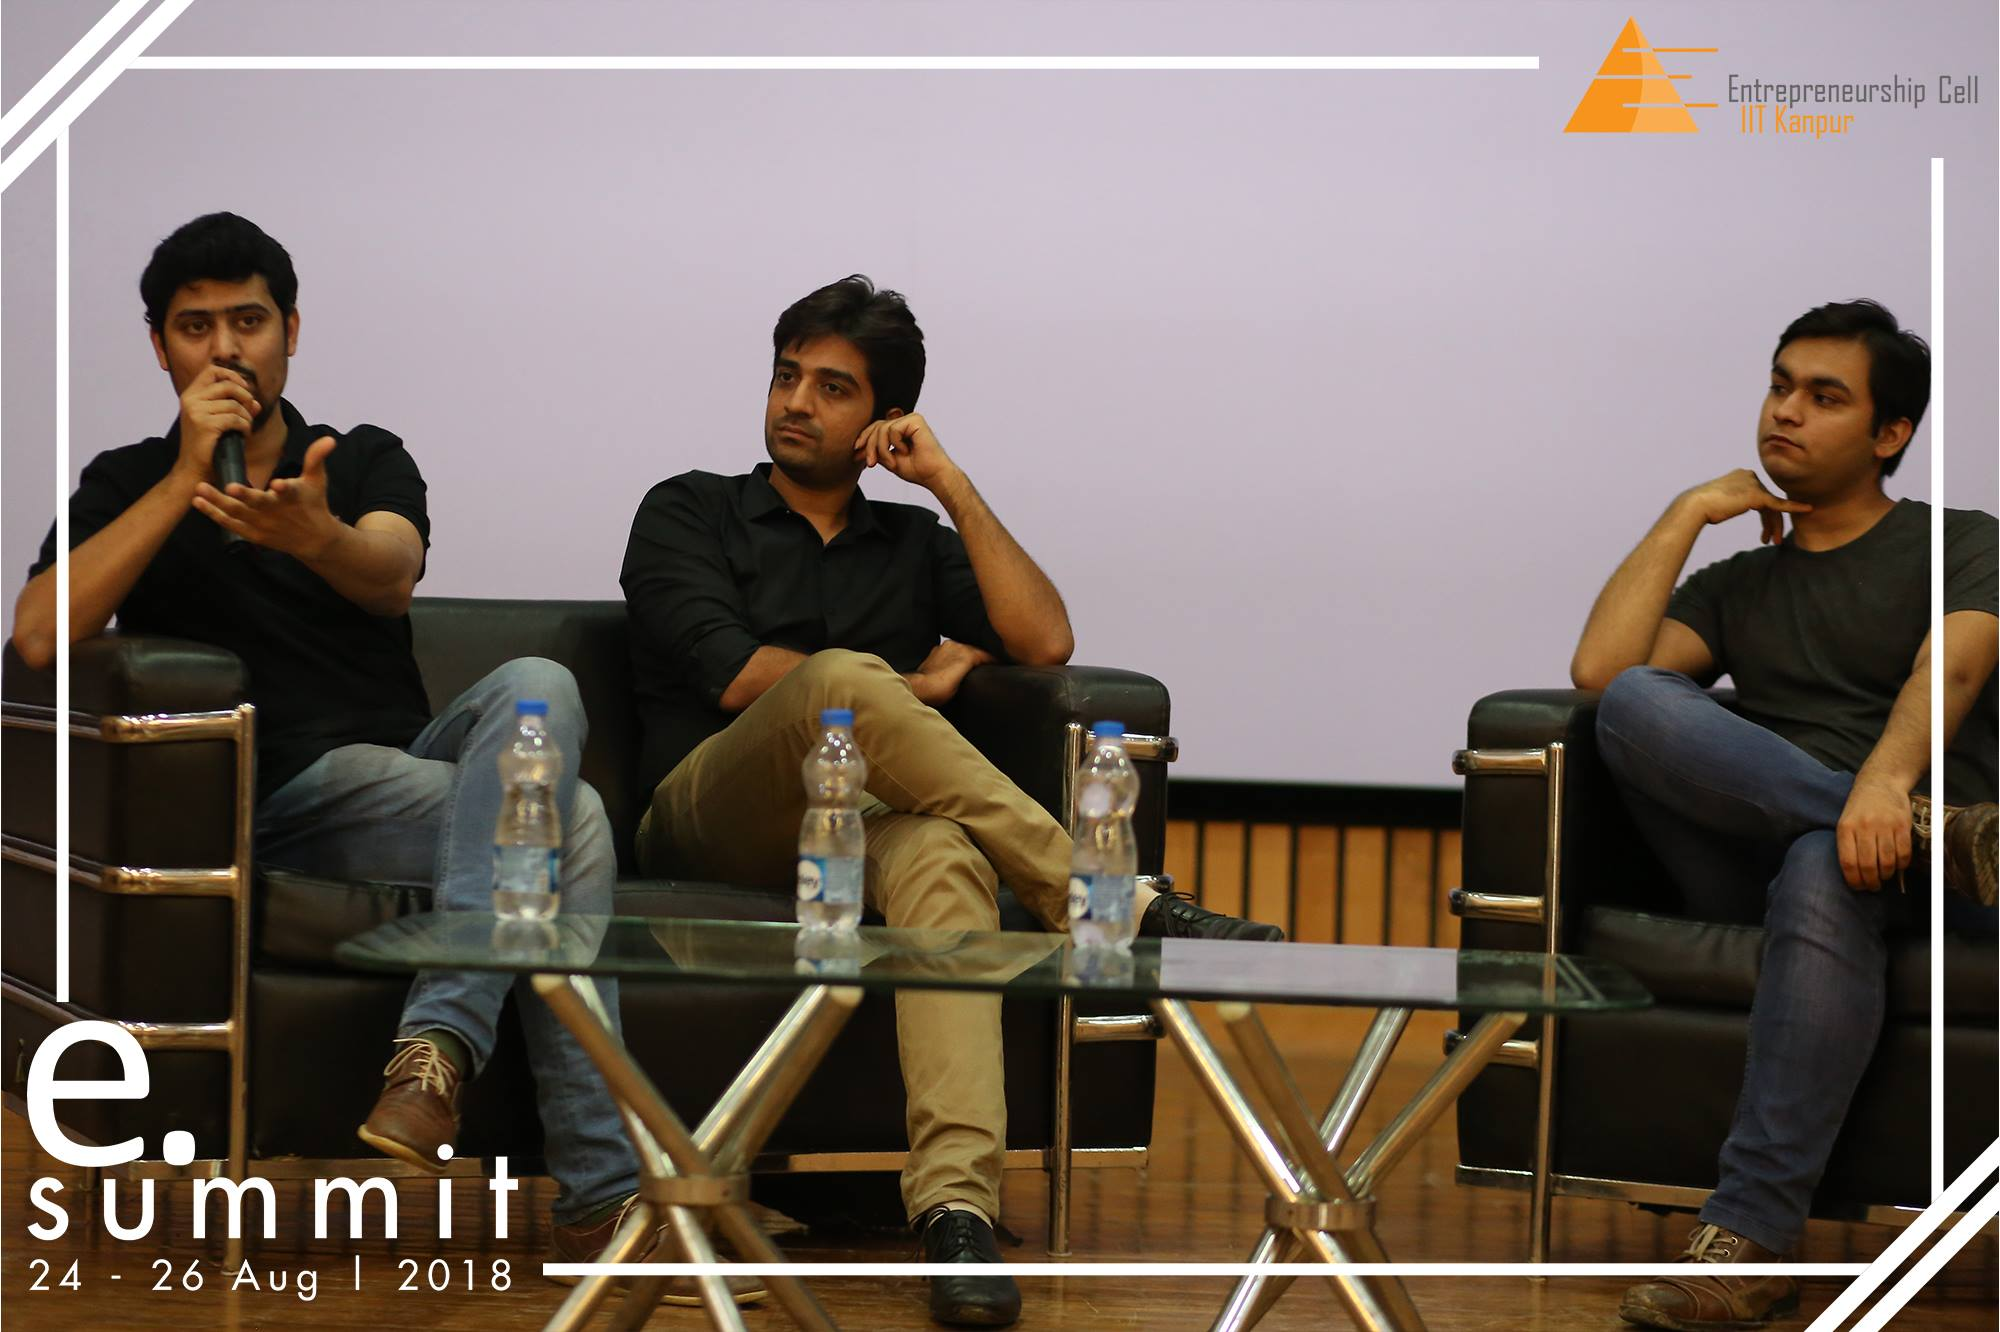 Panel discussion with three speakers